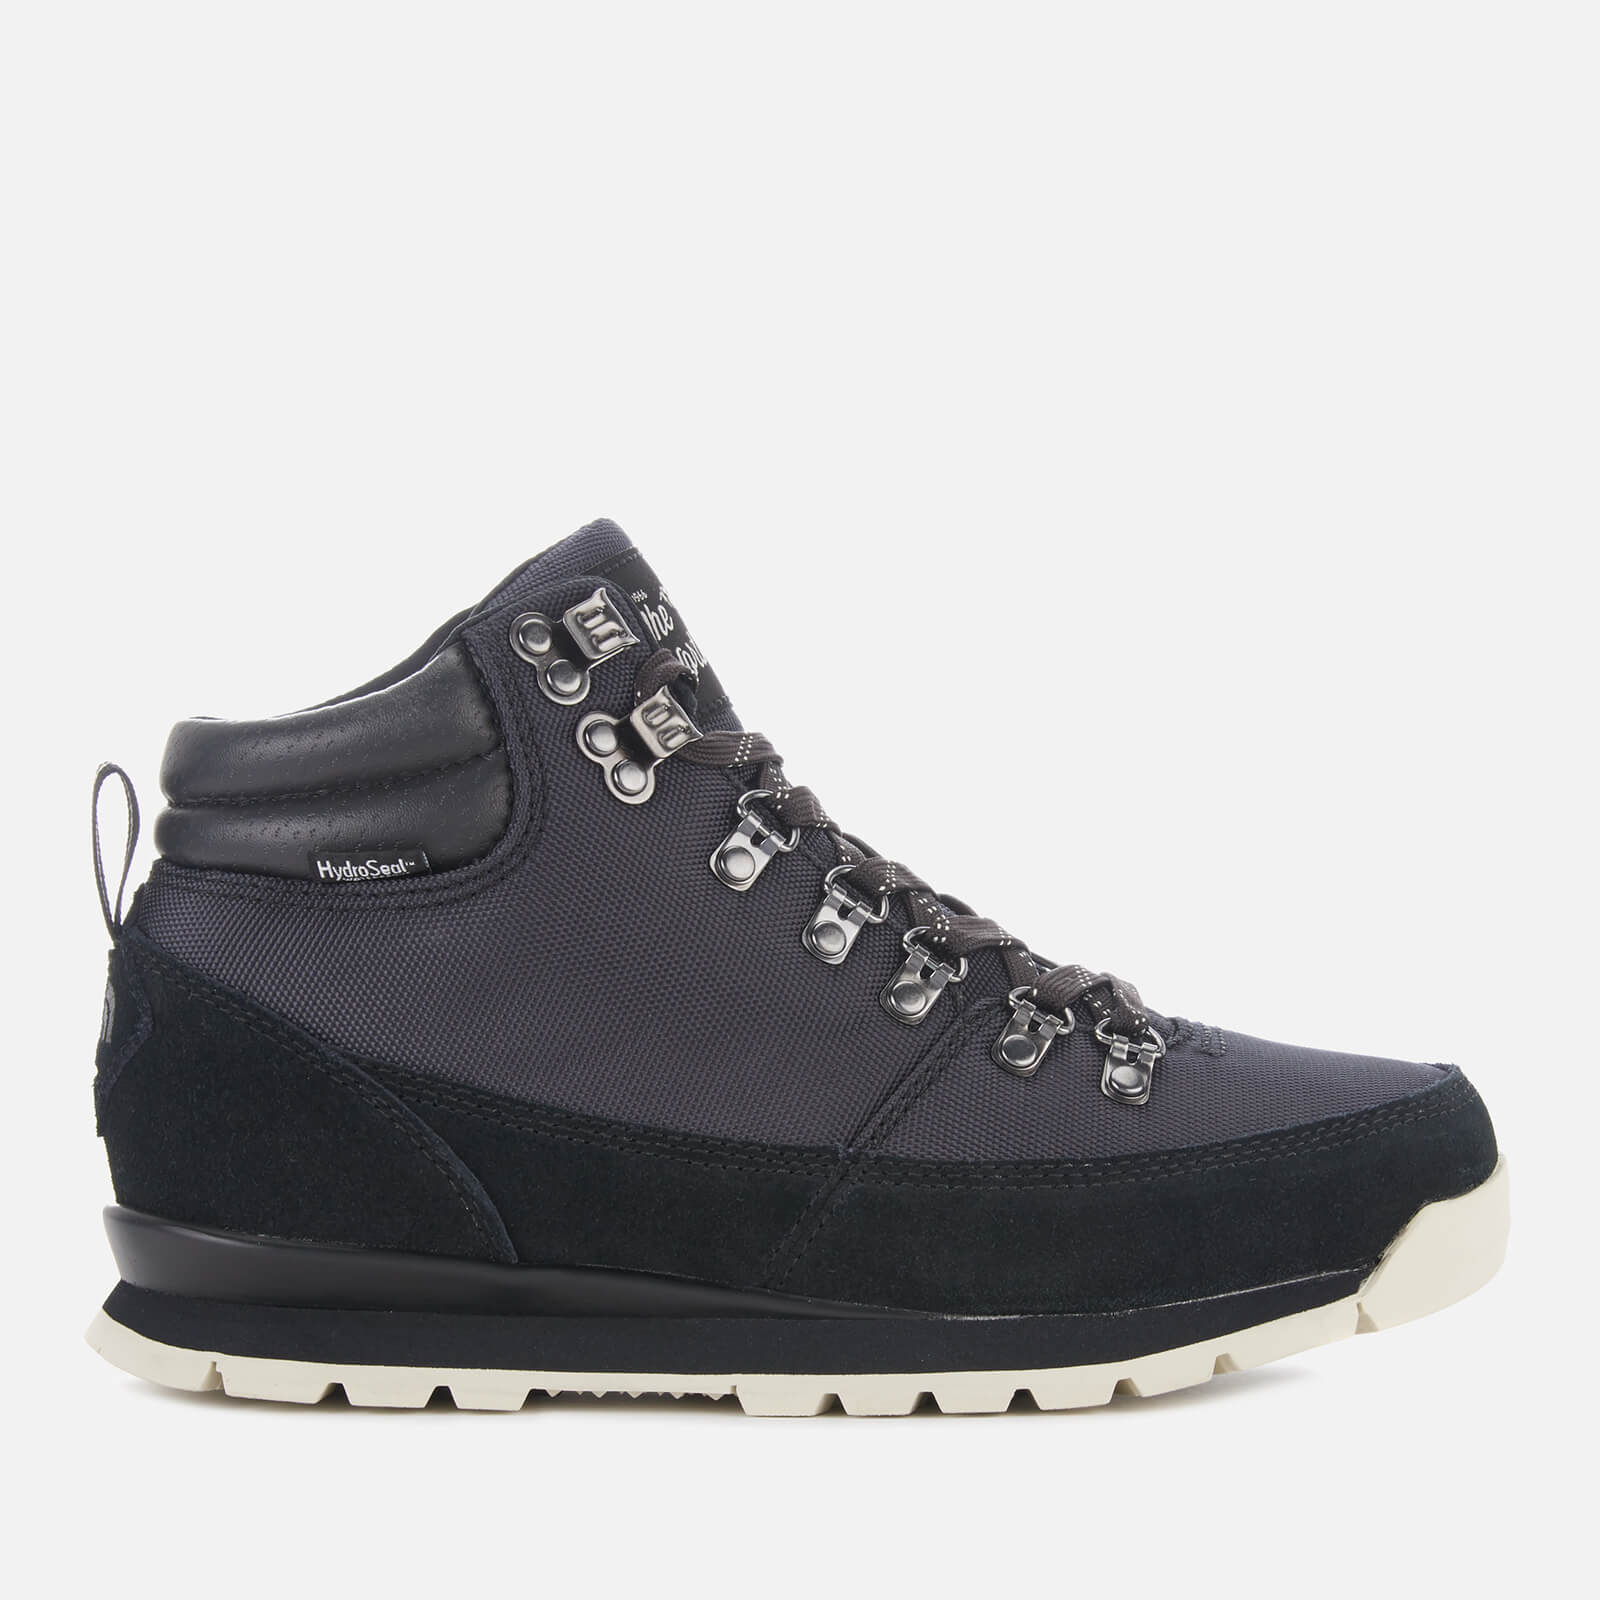 fcc635905 The North Face Women's Back-To-Berkeley Redux Shoes - TNF Black/Vintage  White Womens Footwear | TheHut.com